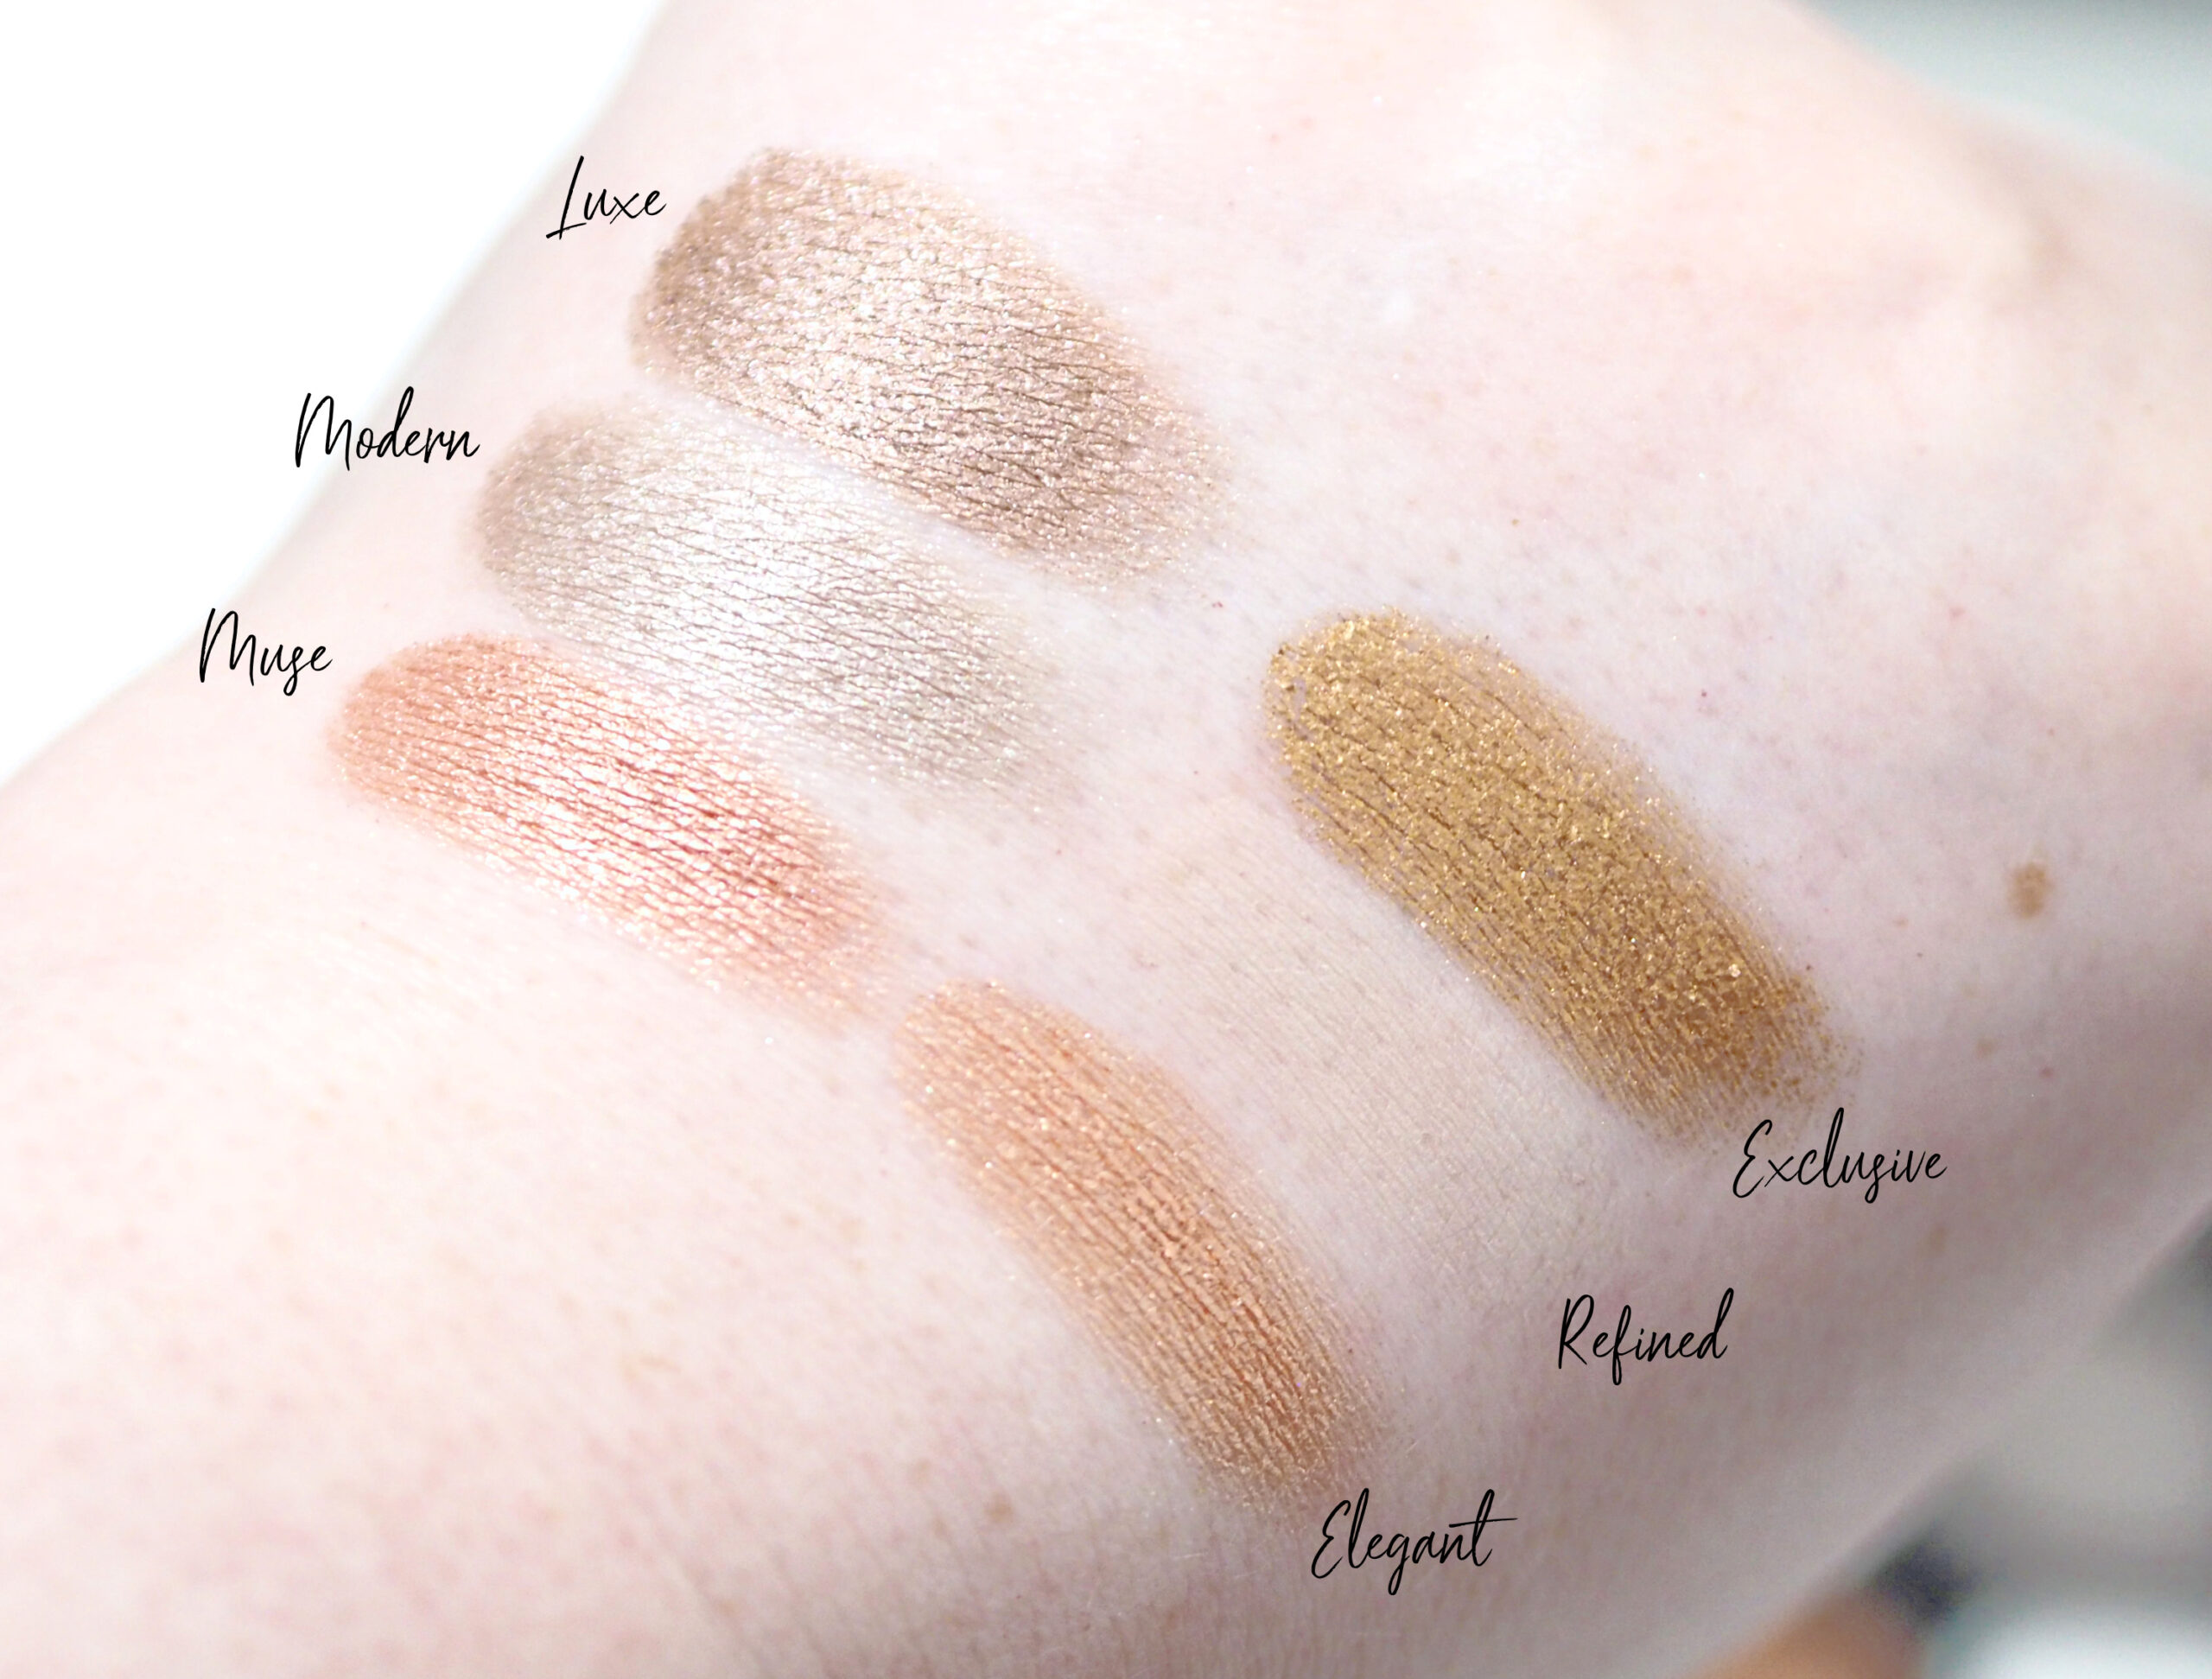 Revolution Forever Flawless Timeless Fantasy Eyeshadow Palette Review Swatches